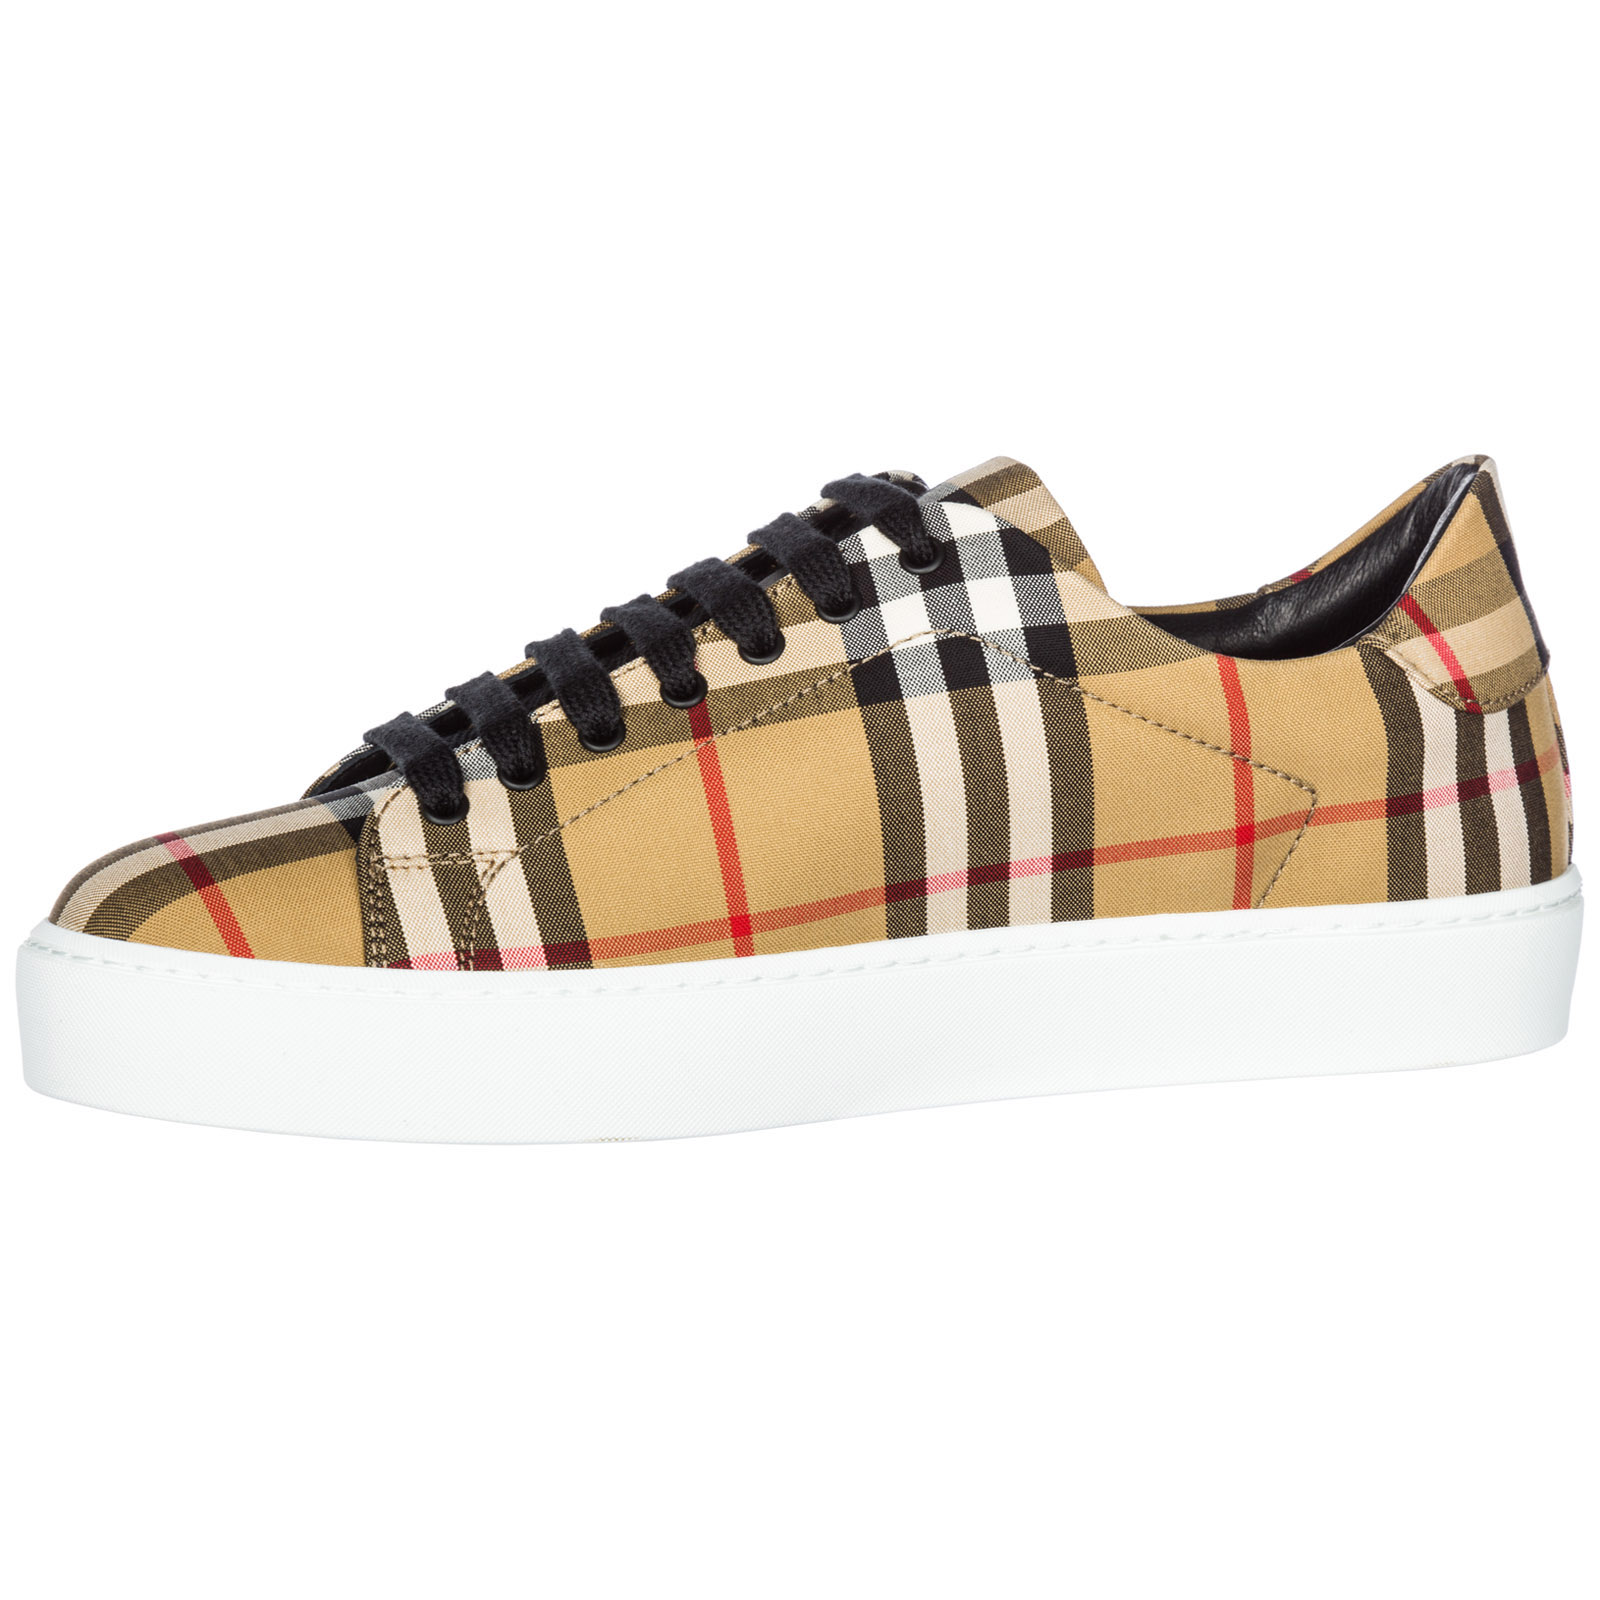 564be2b6e13 ... Chaussures baskets sneakers femme westford ...